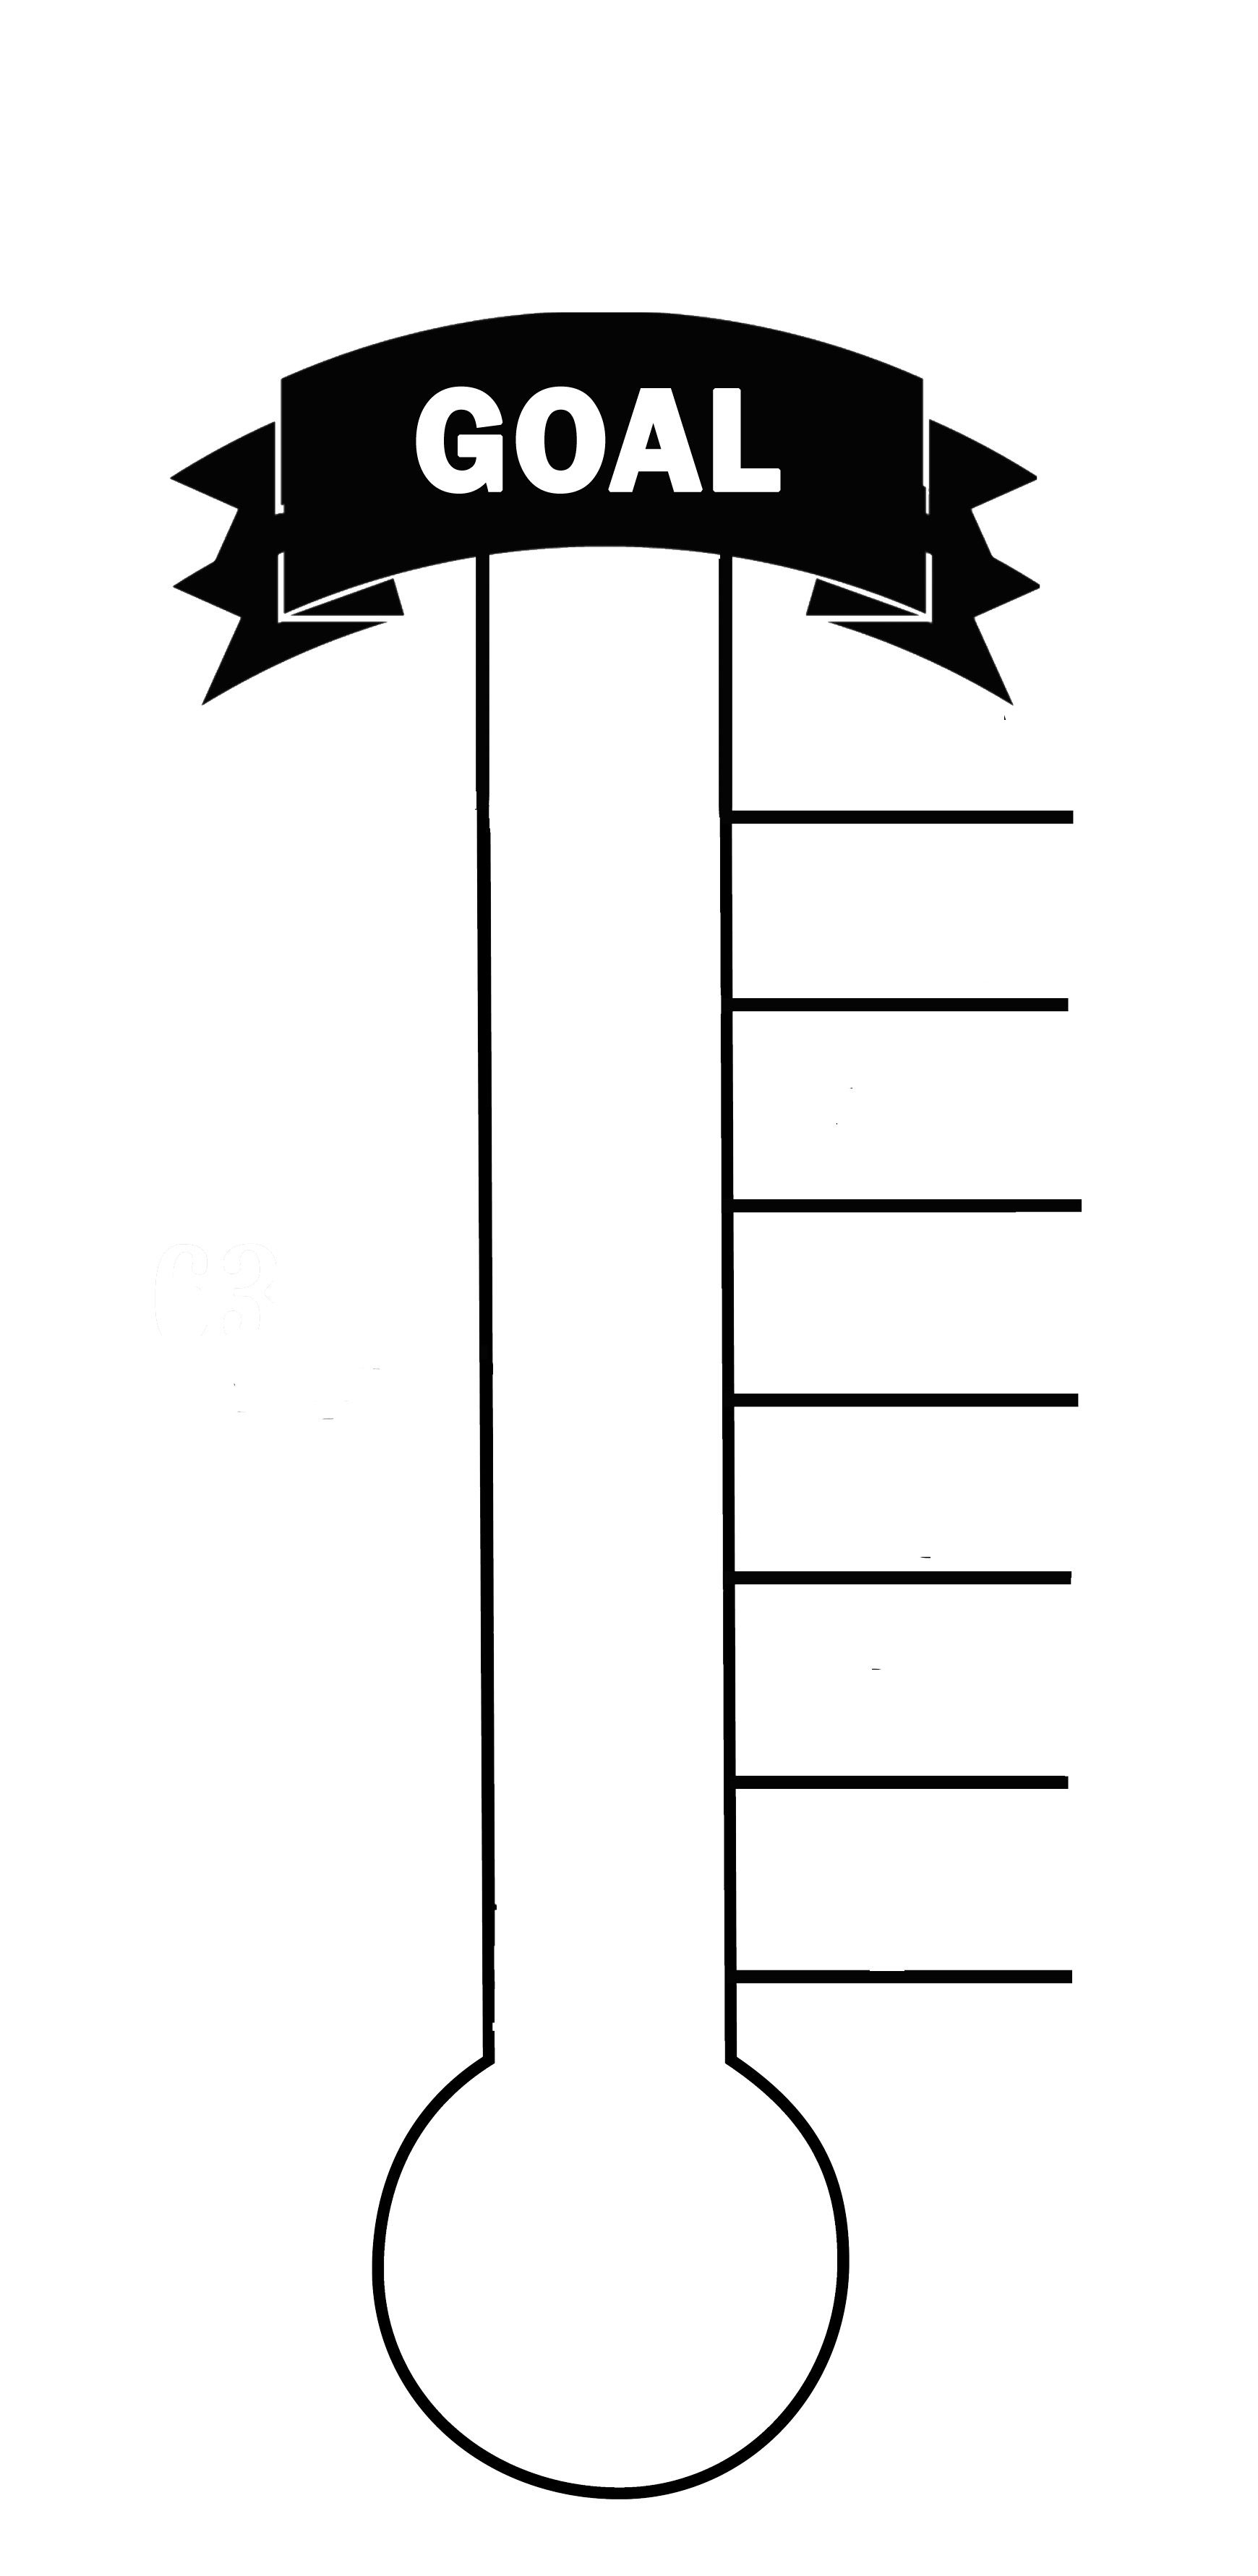 Here's A Great Way To Encourage Your Church Or Small Group! Print - Free Printable Goal Thermometer Template